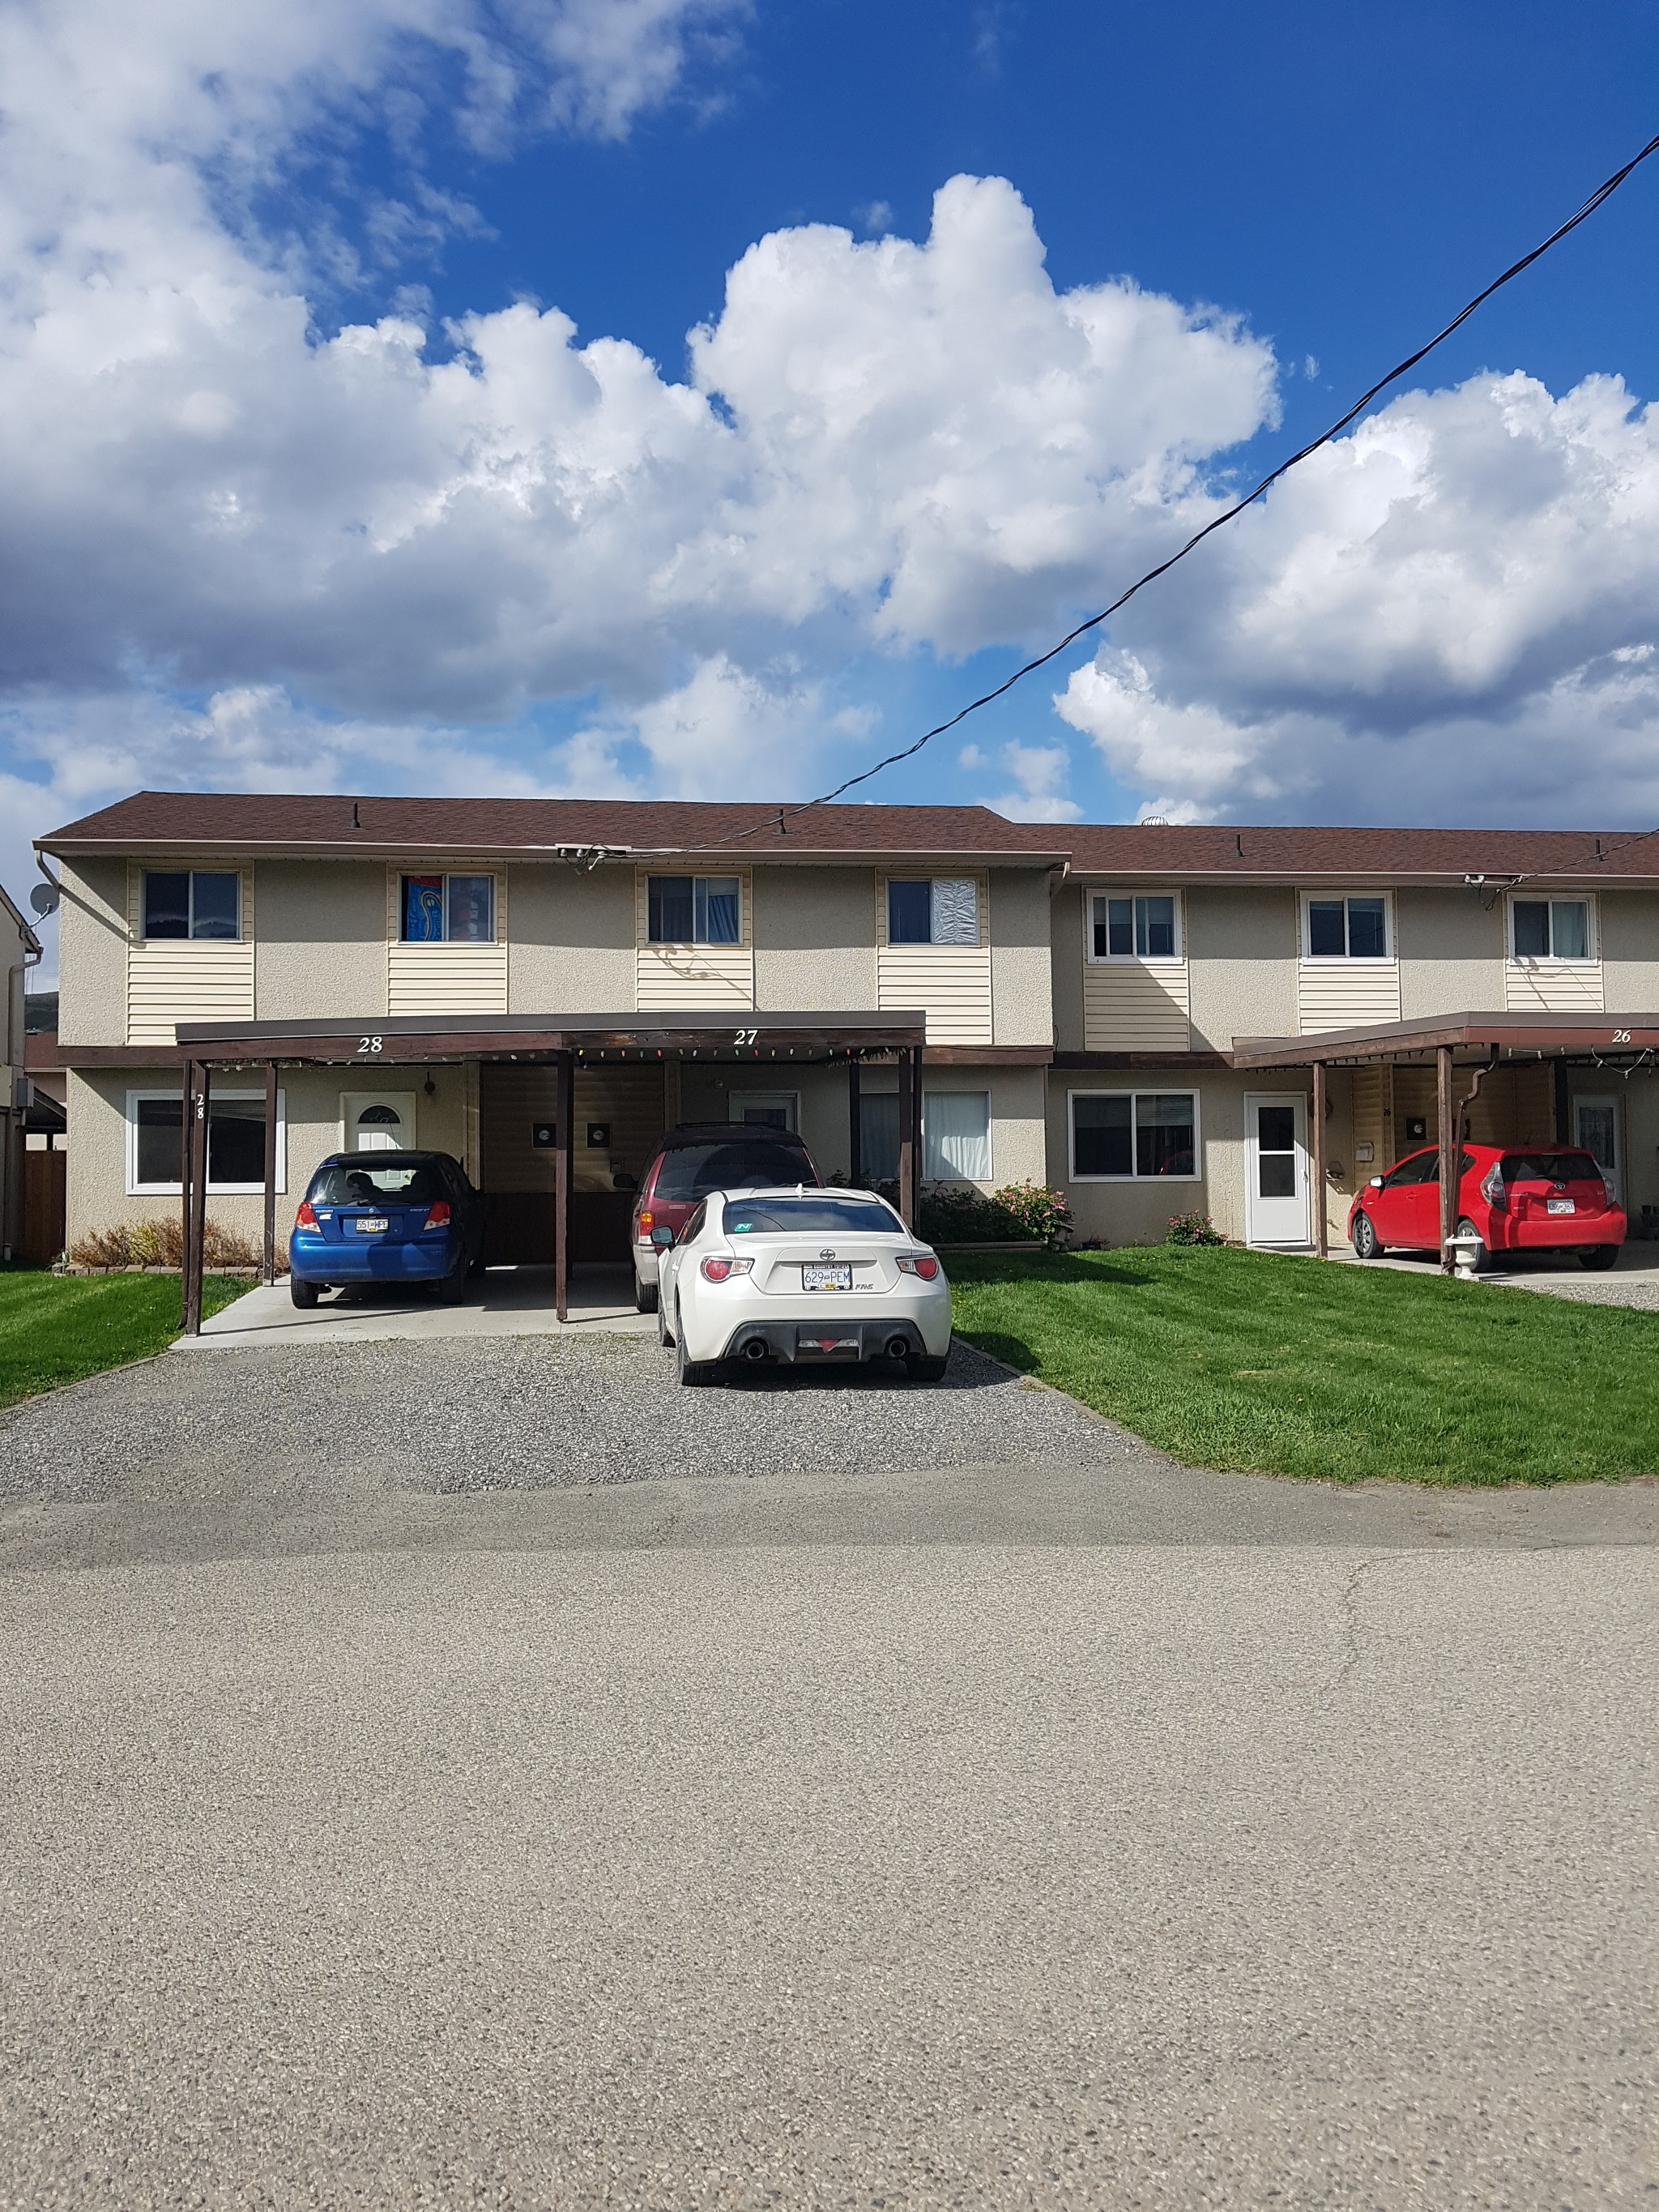 FEATURED LISTING: 27 1697 GREENFIELD AVE KAMLOOPS